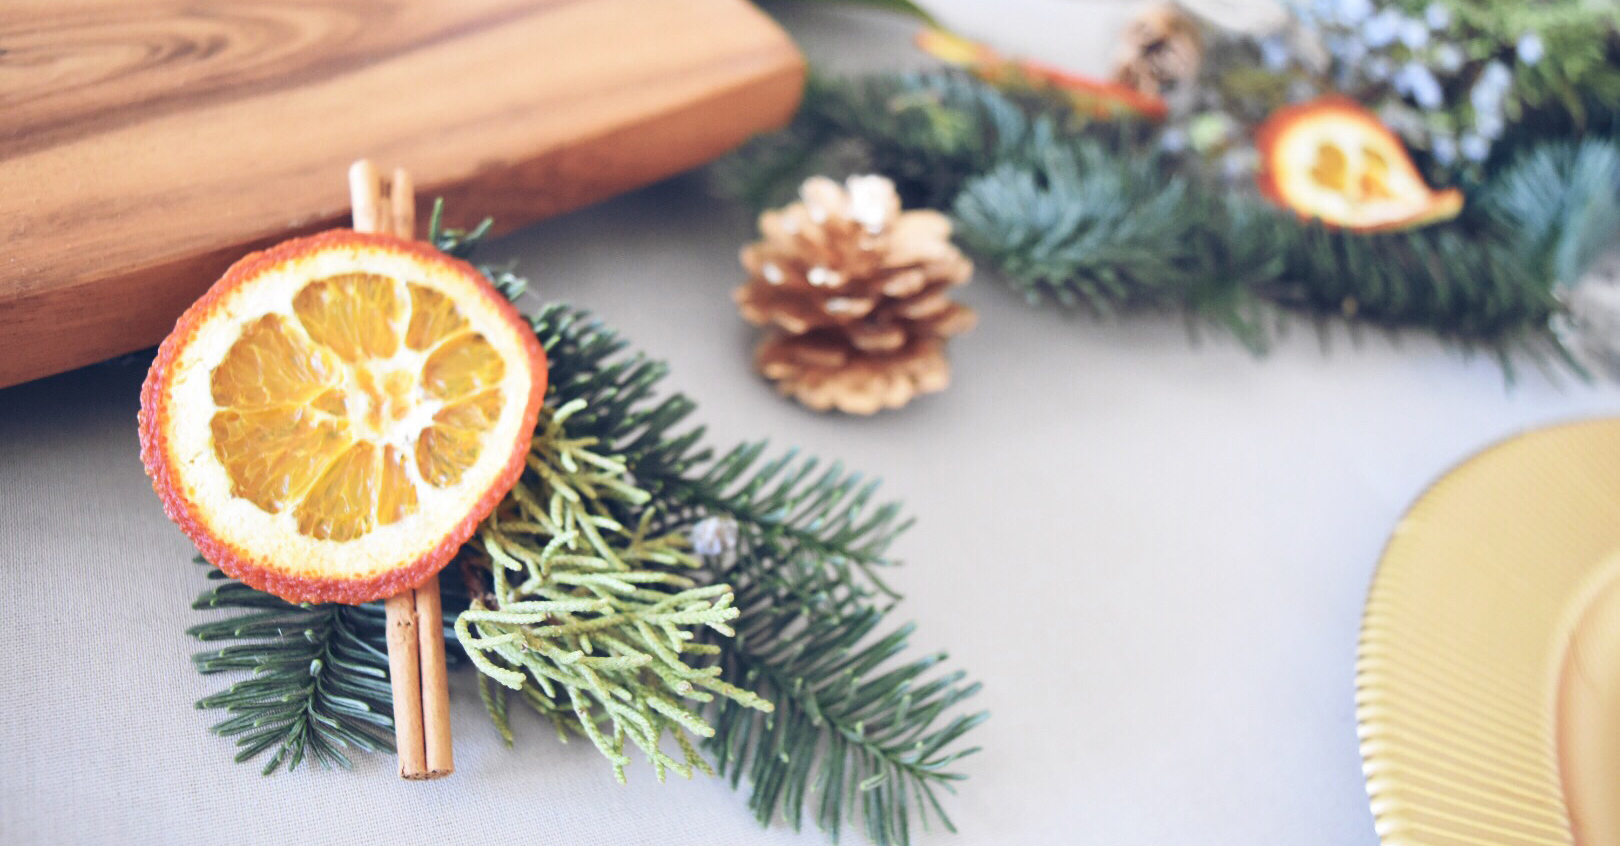 HOLIDAY ORANGE, CINNAMON AND PINE